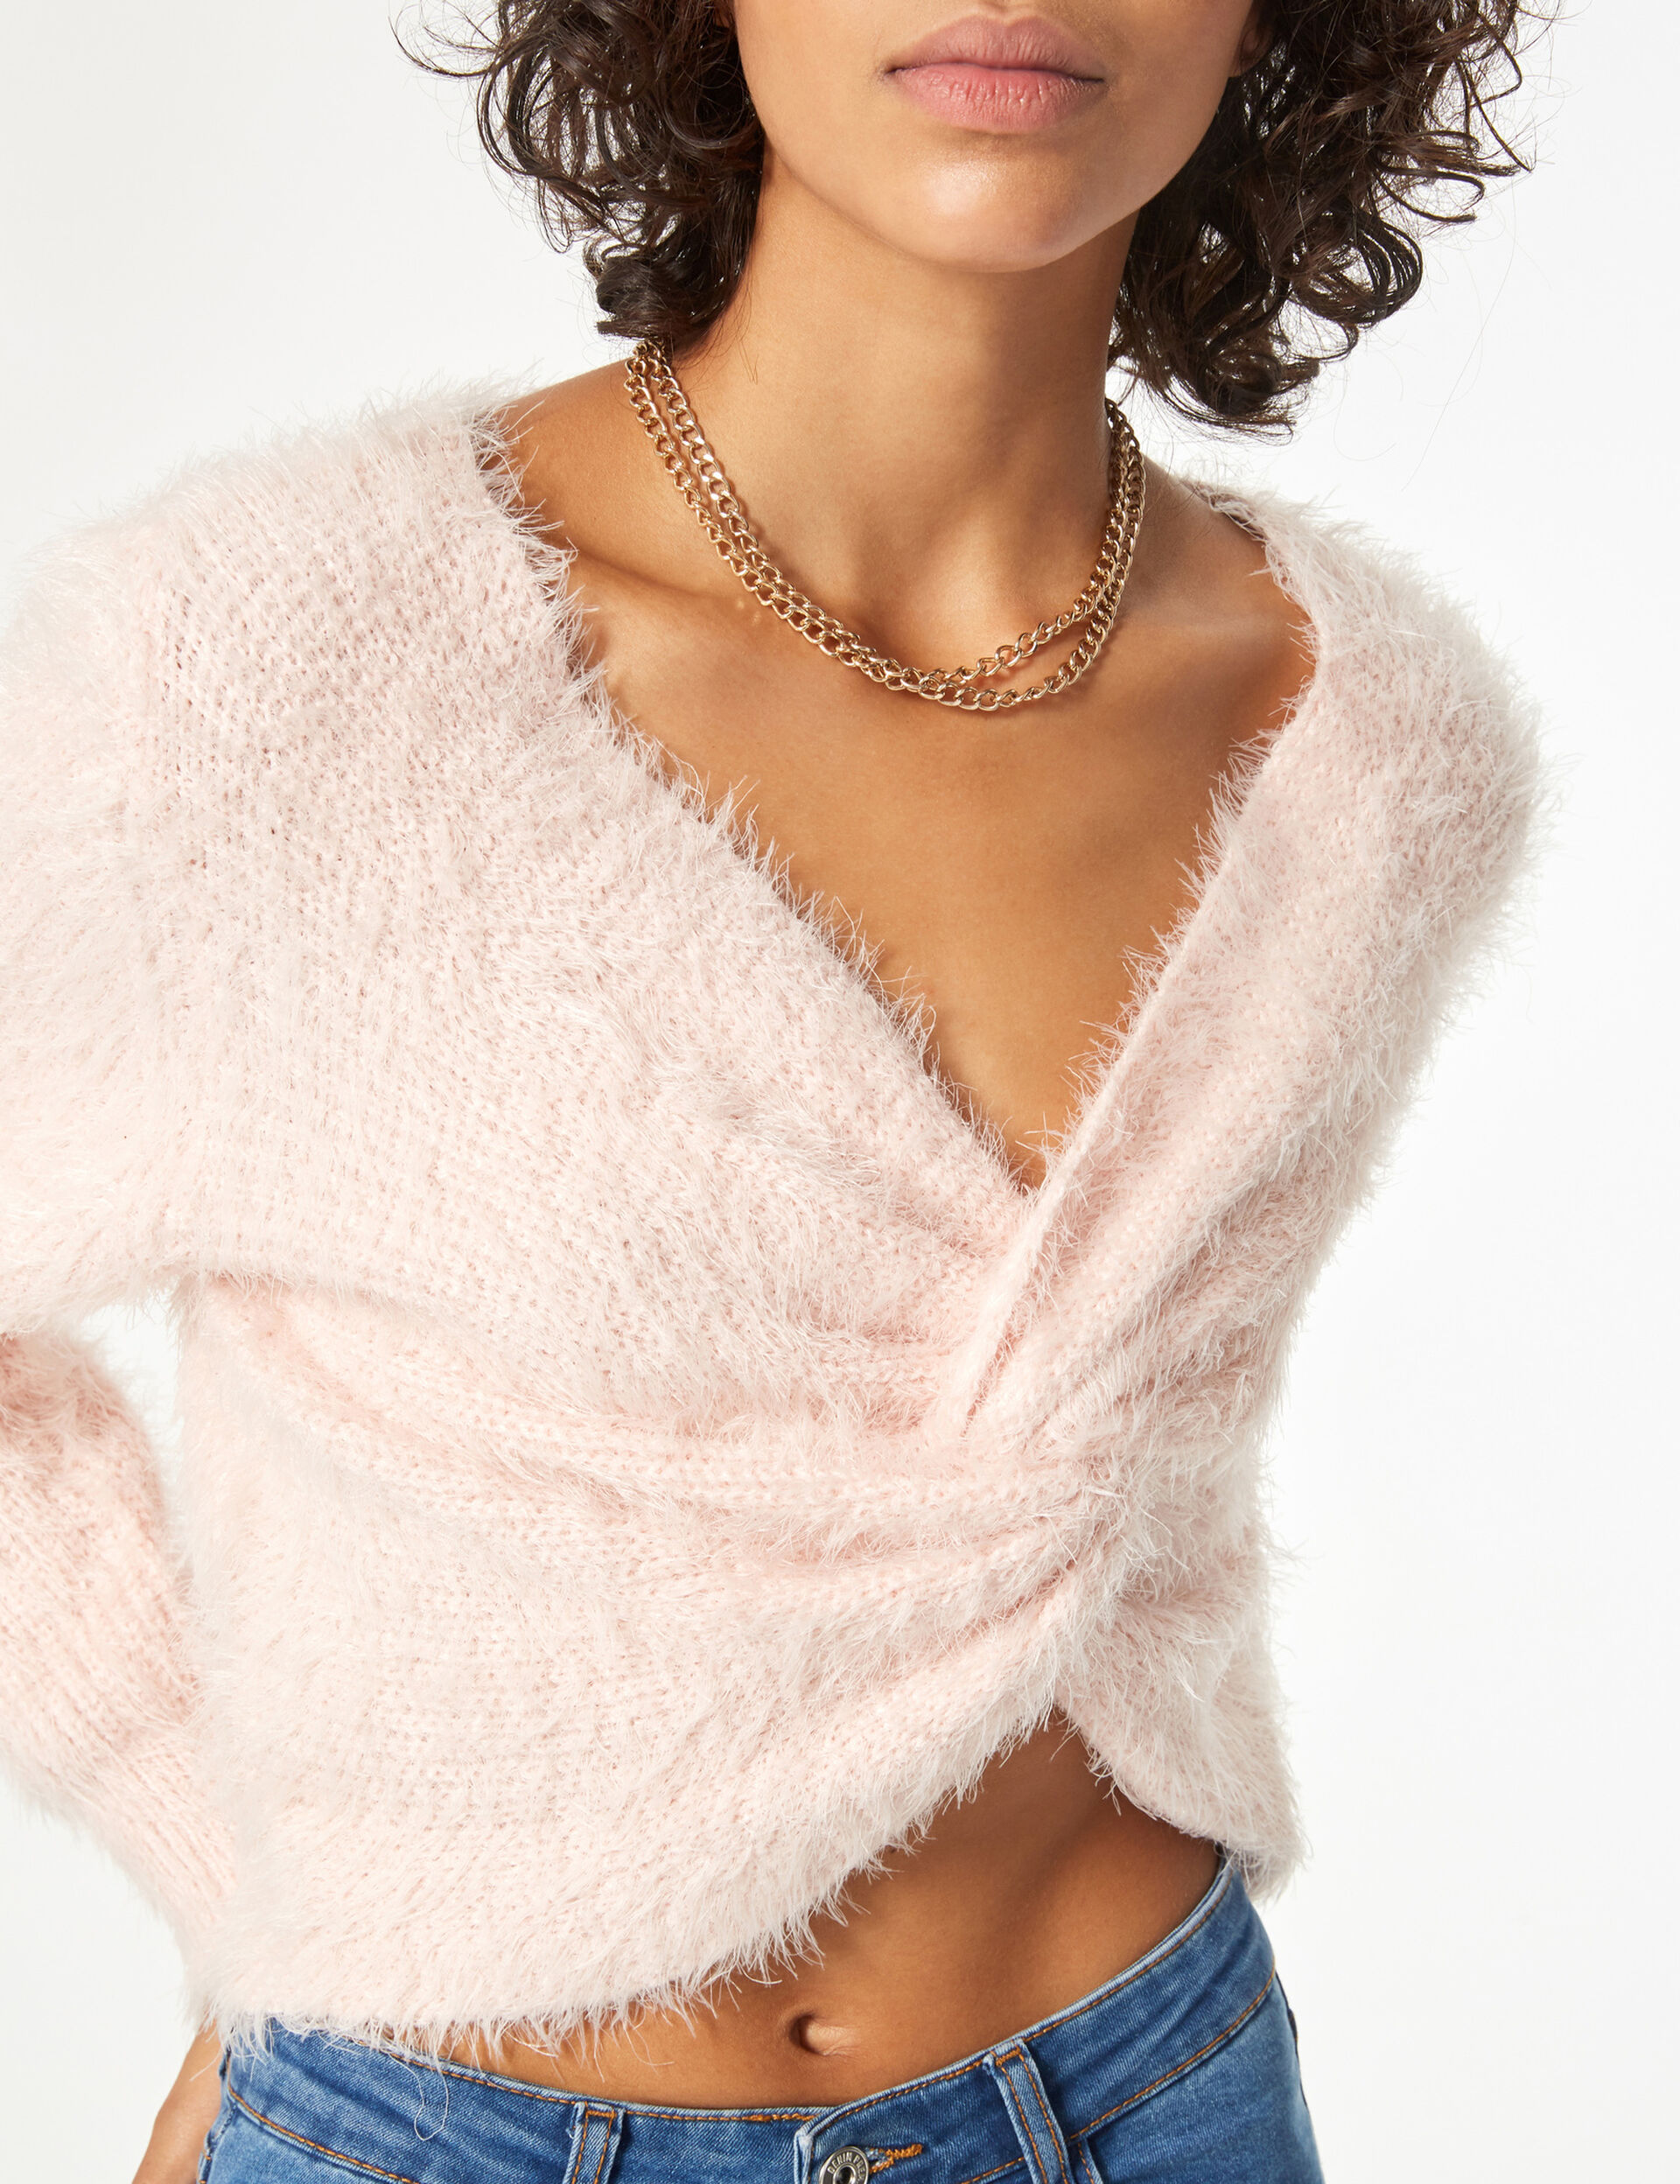 Deep-neck jumper with knot detail